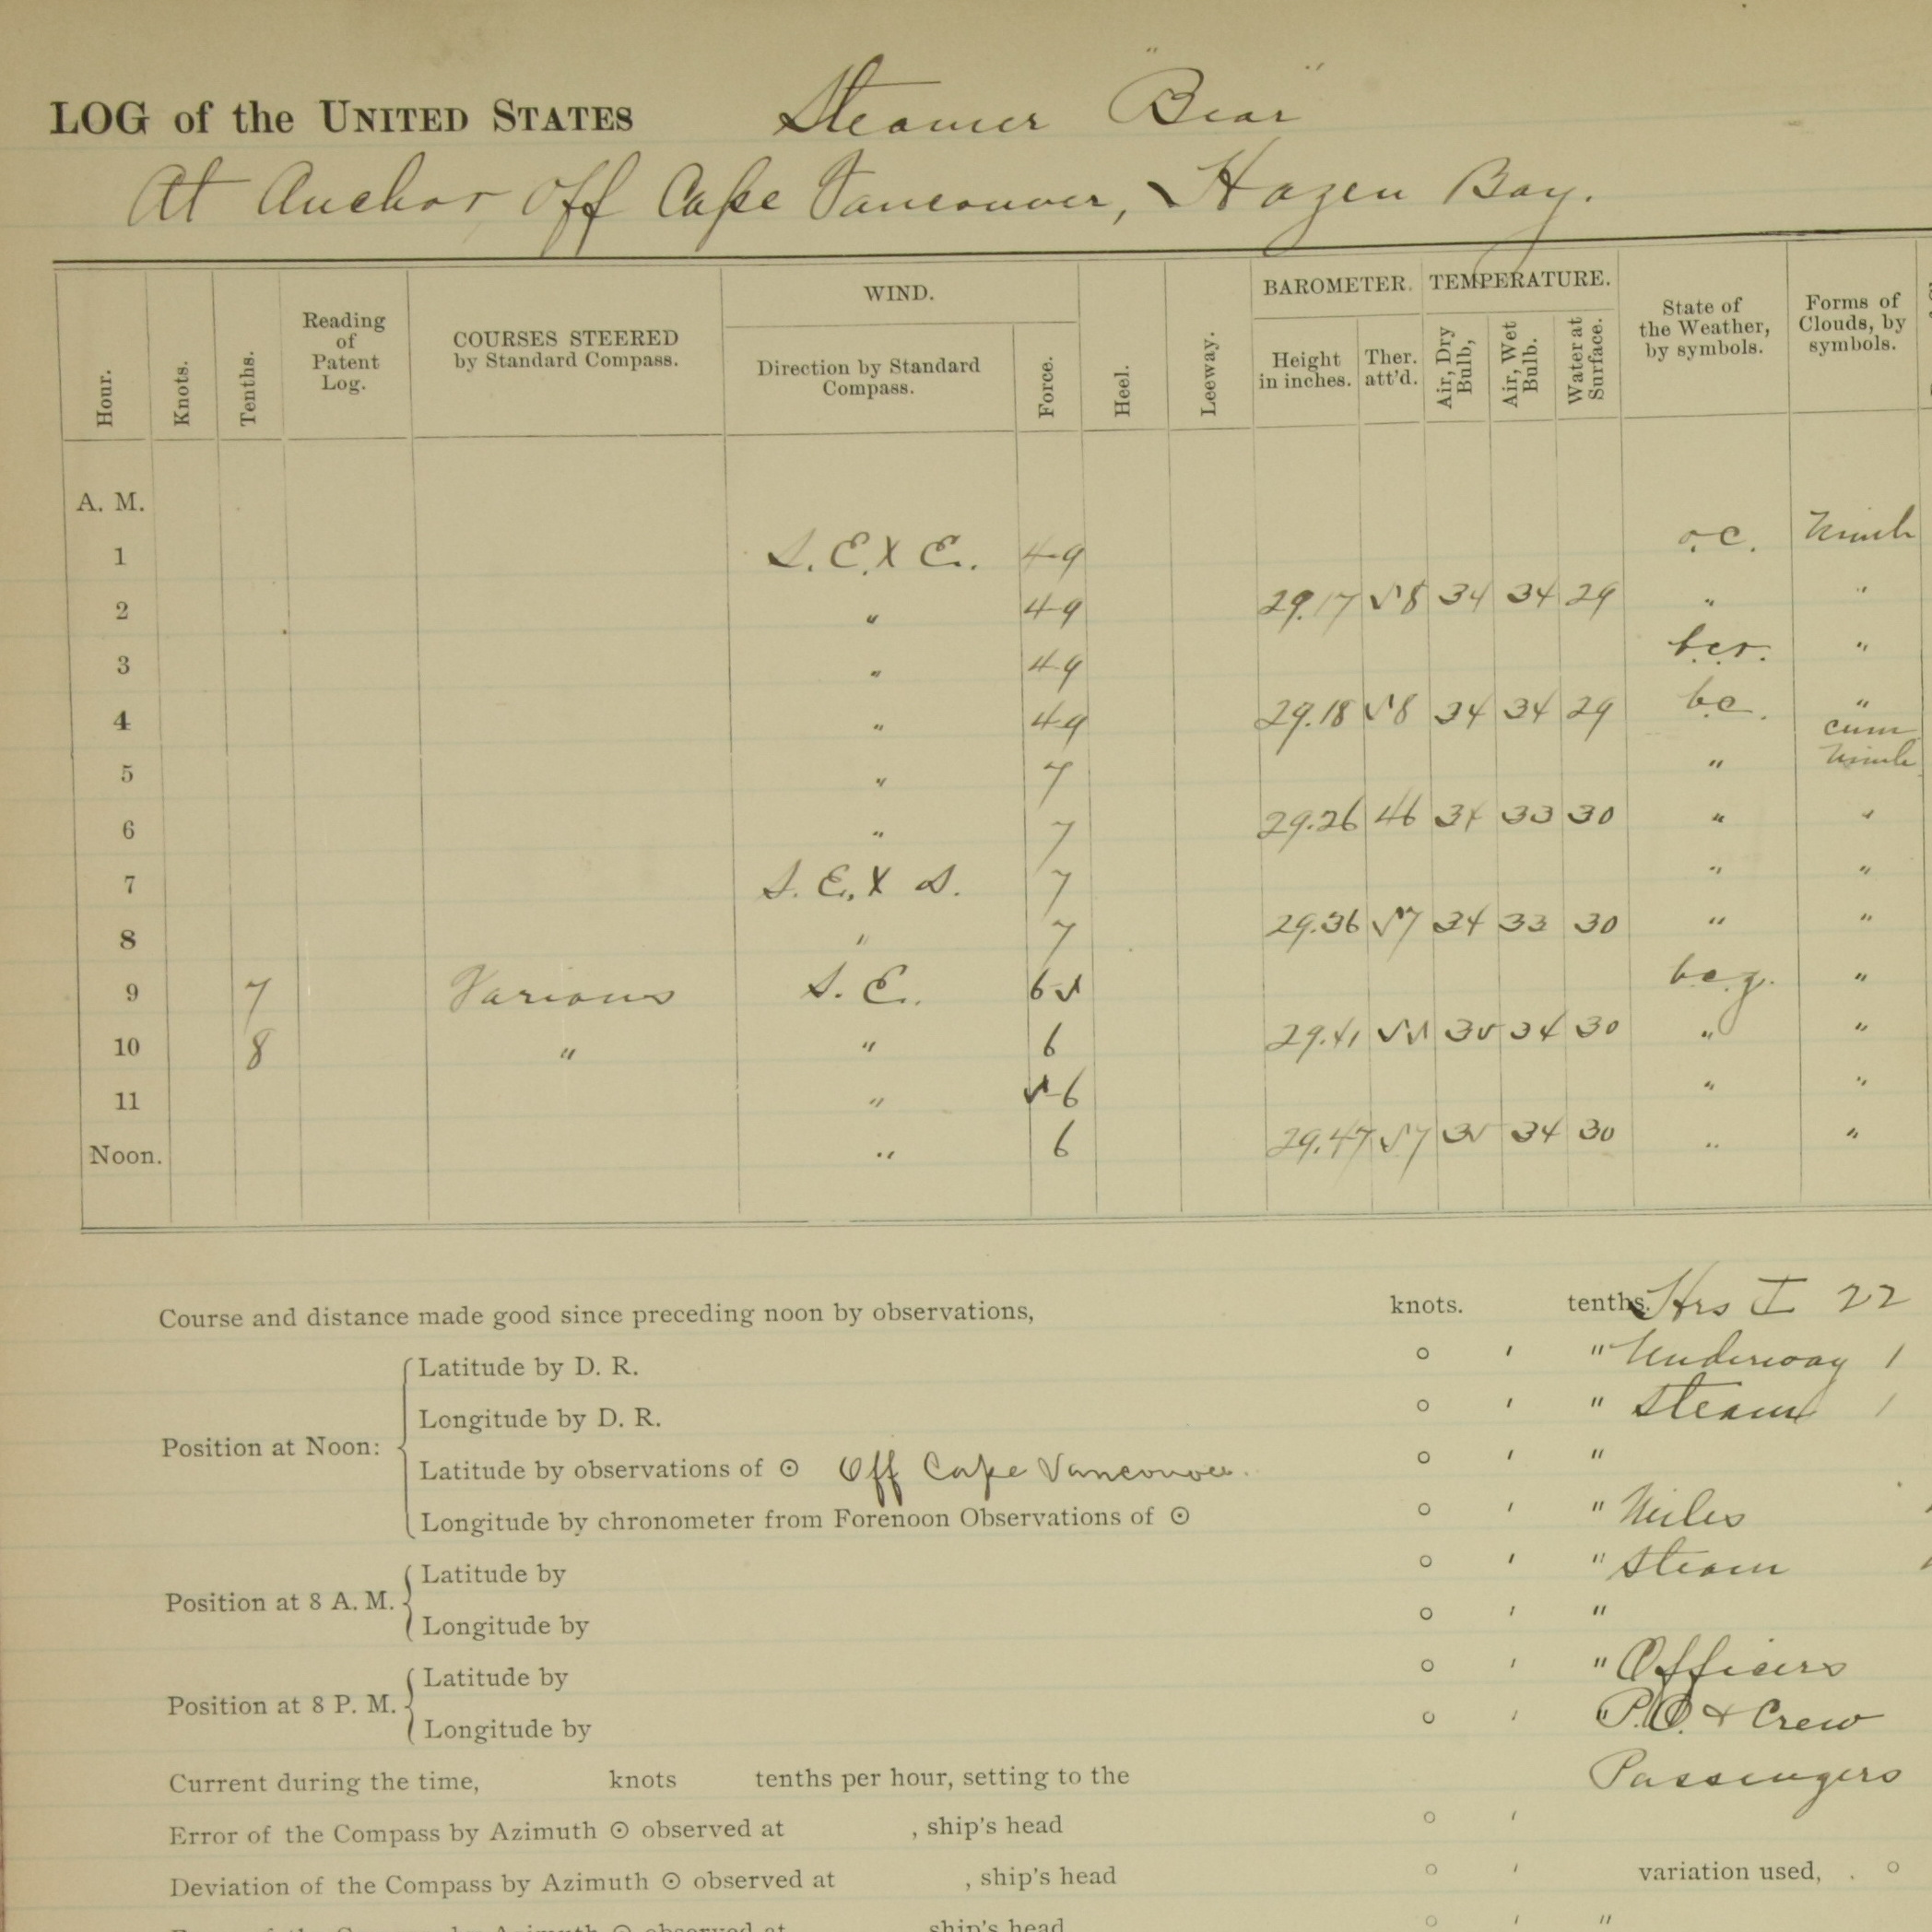 Log of steamer Bear for December 16, 1897.